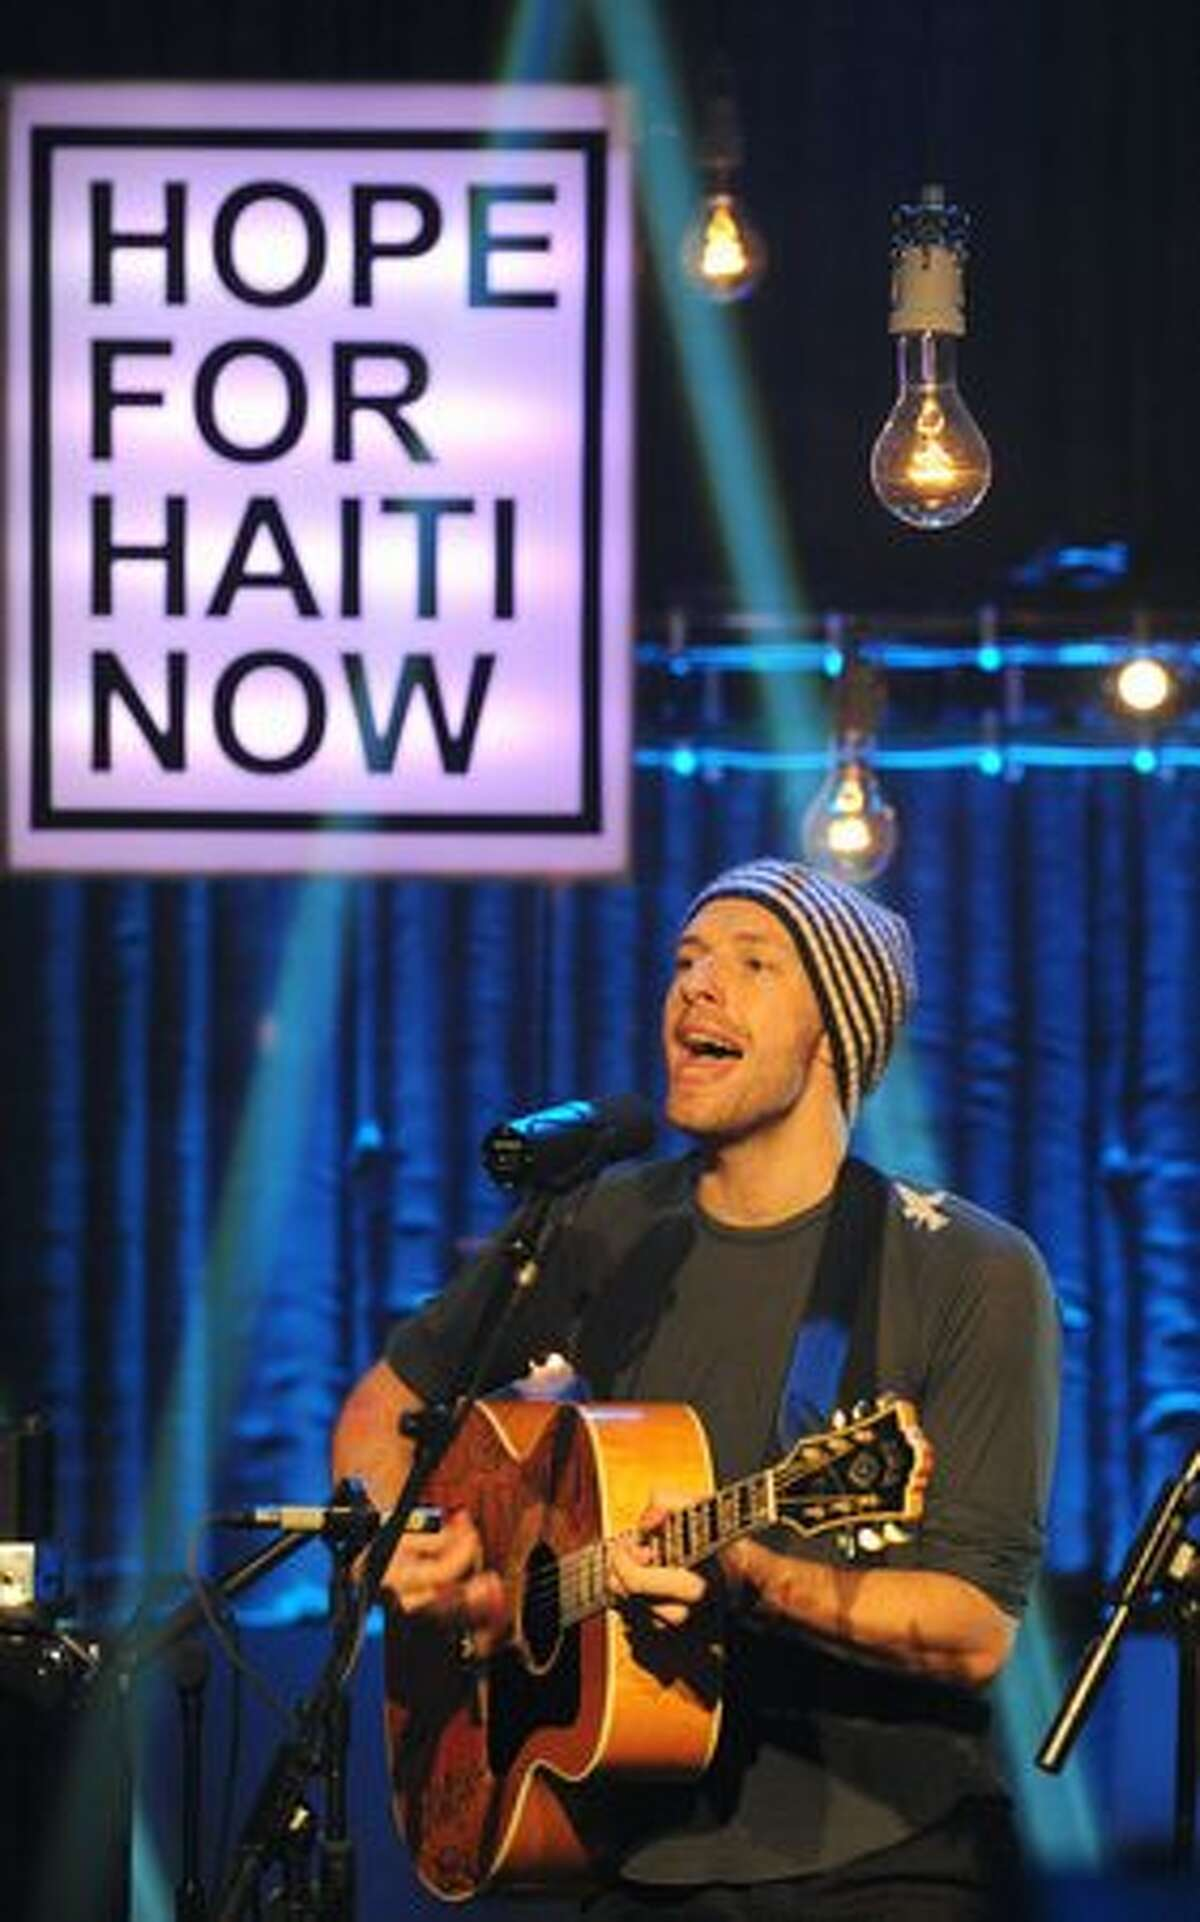 Chris Martin of Coldplay performs on stage at the Hope For Haiti Now concert in London.